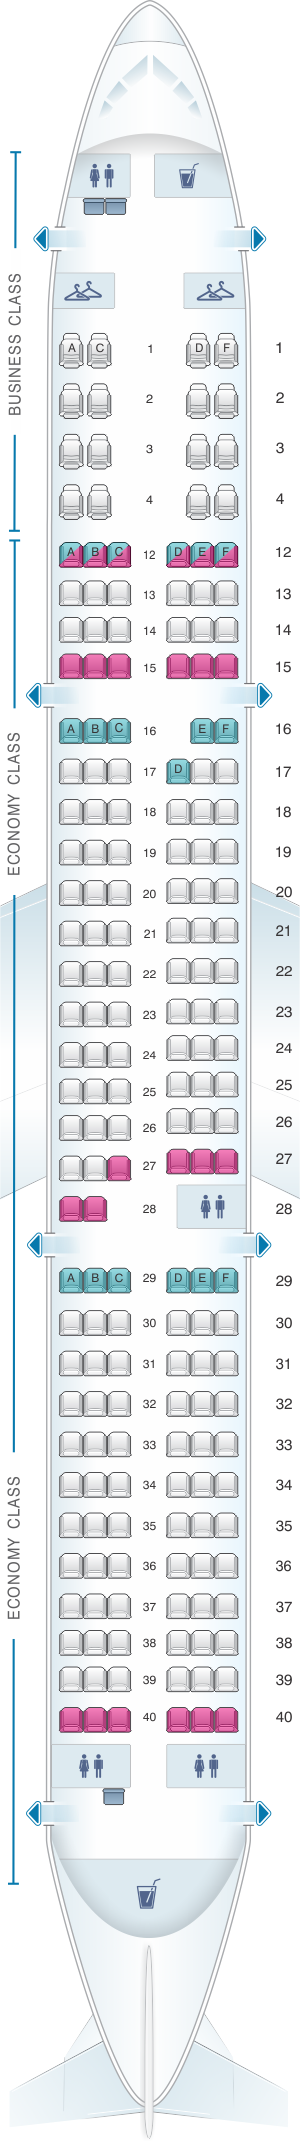 Seat map for Air Canada Airbus A321 200 Layout 2